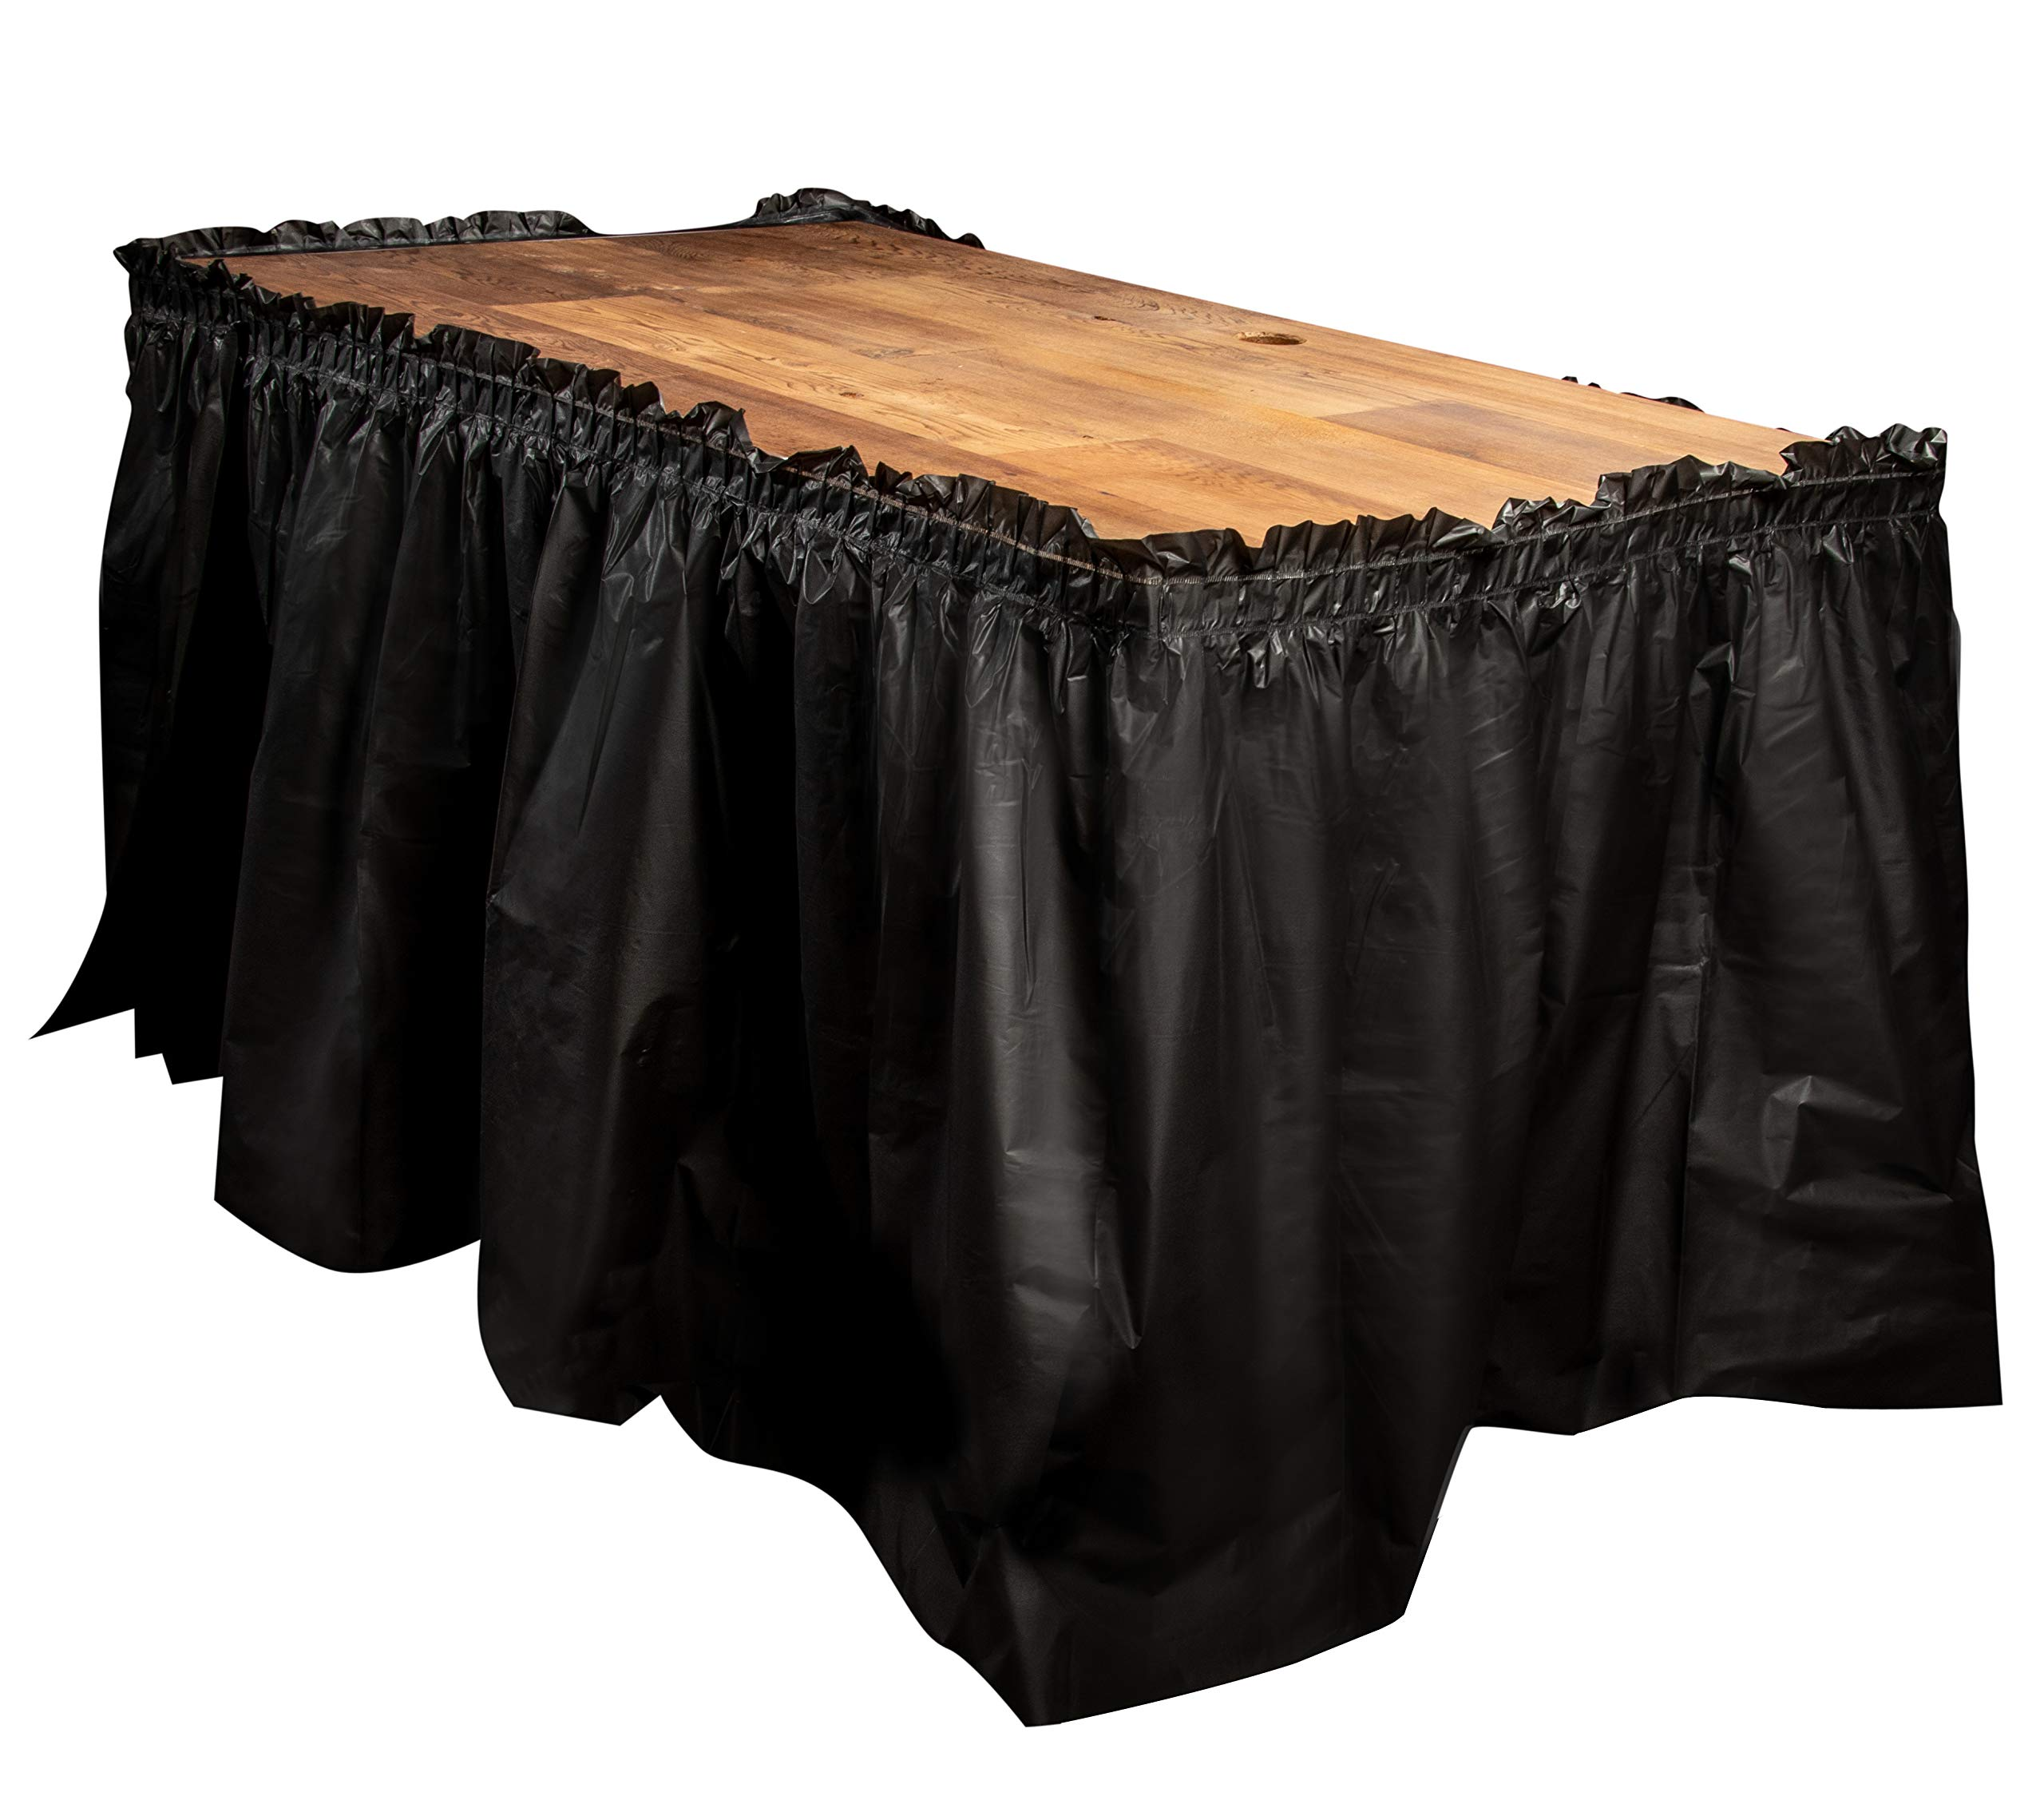 Disposable Table Skirts - 6-Pack Ruffled Plastic Table Skirts - Perfect for Weddings, Engagement Parties, Birthdays, Business Events, Baby Showers, Black, Suitable for Tables Up To 8 Feet Long by Juvale